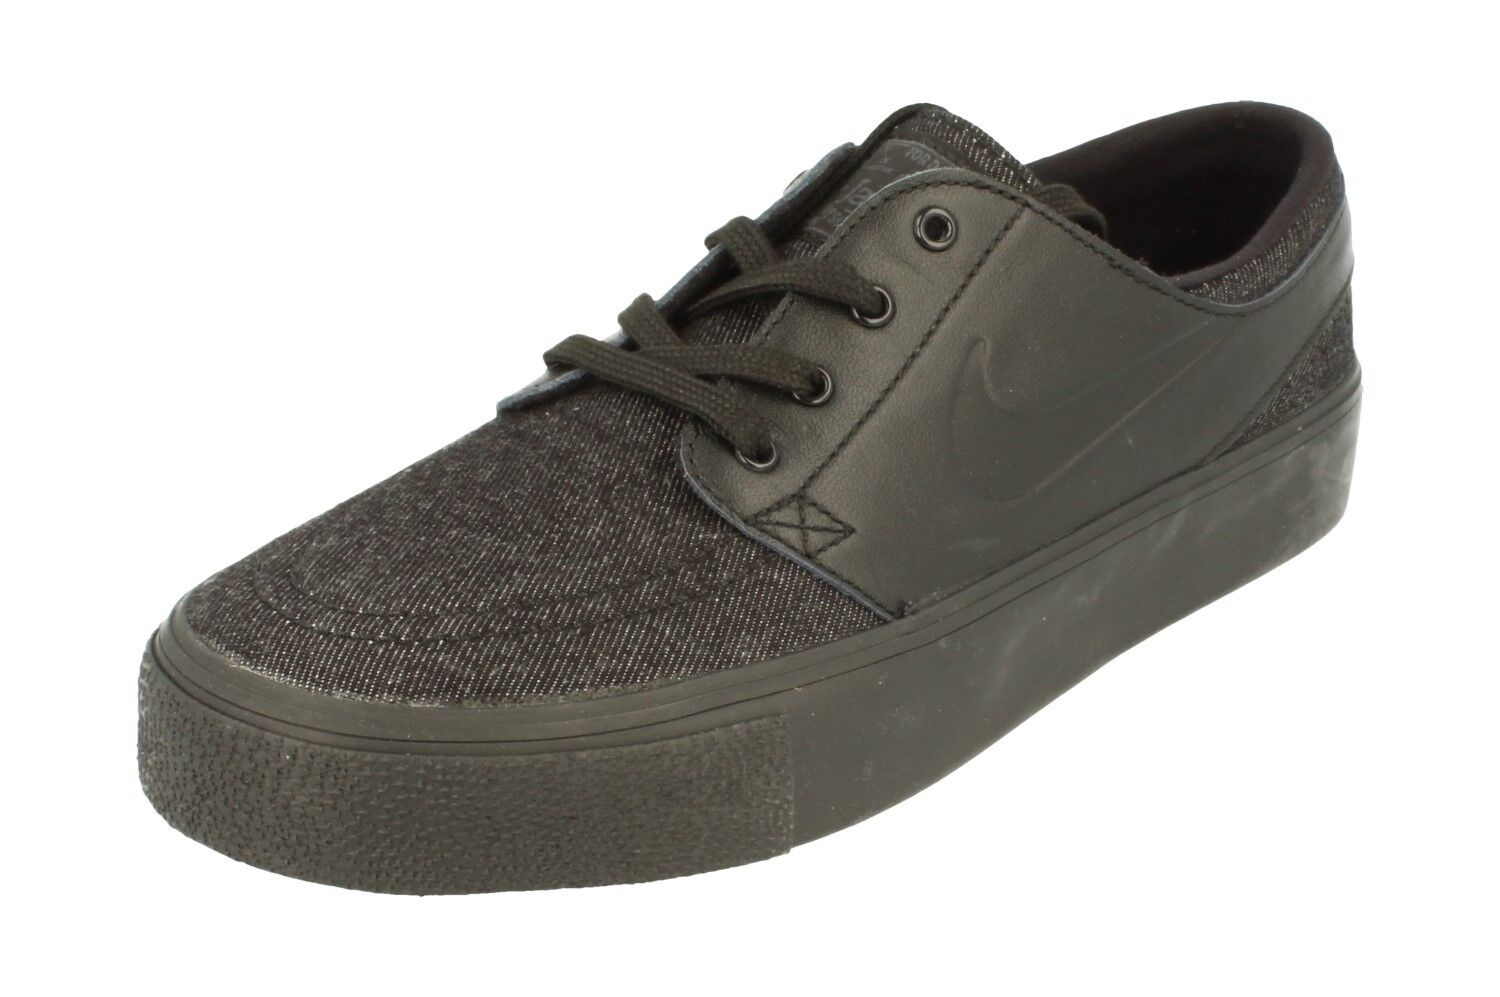 The latest discount shoes for men and women Nike Sb Zoom Sfefan Janoski Elite Ht Mens Trainers 918303 Sneakers Shoes 001